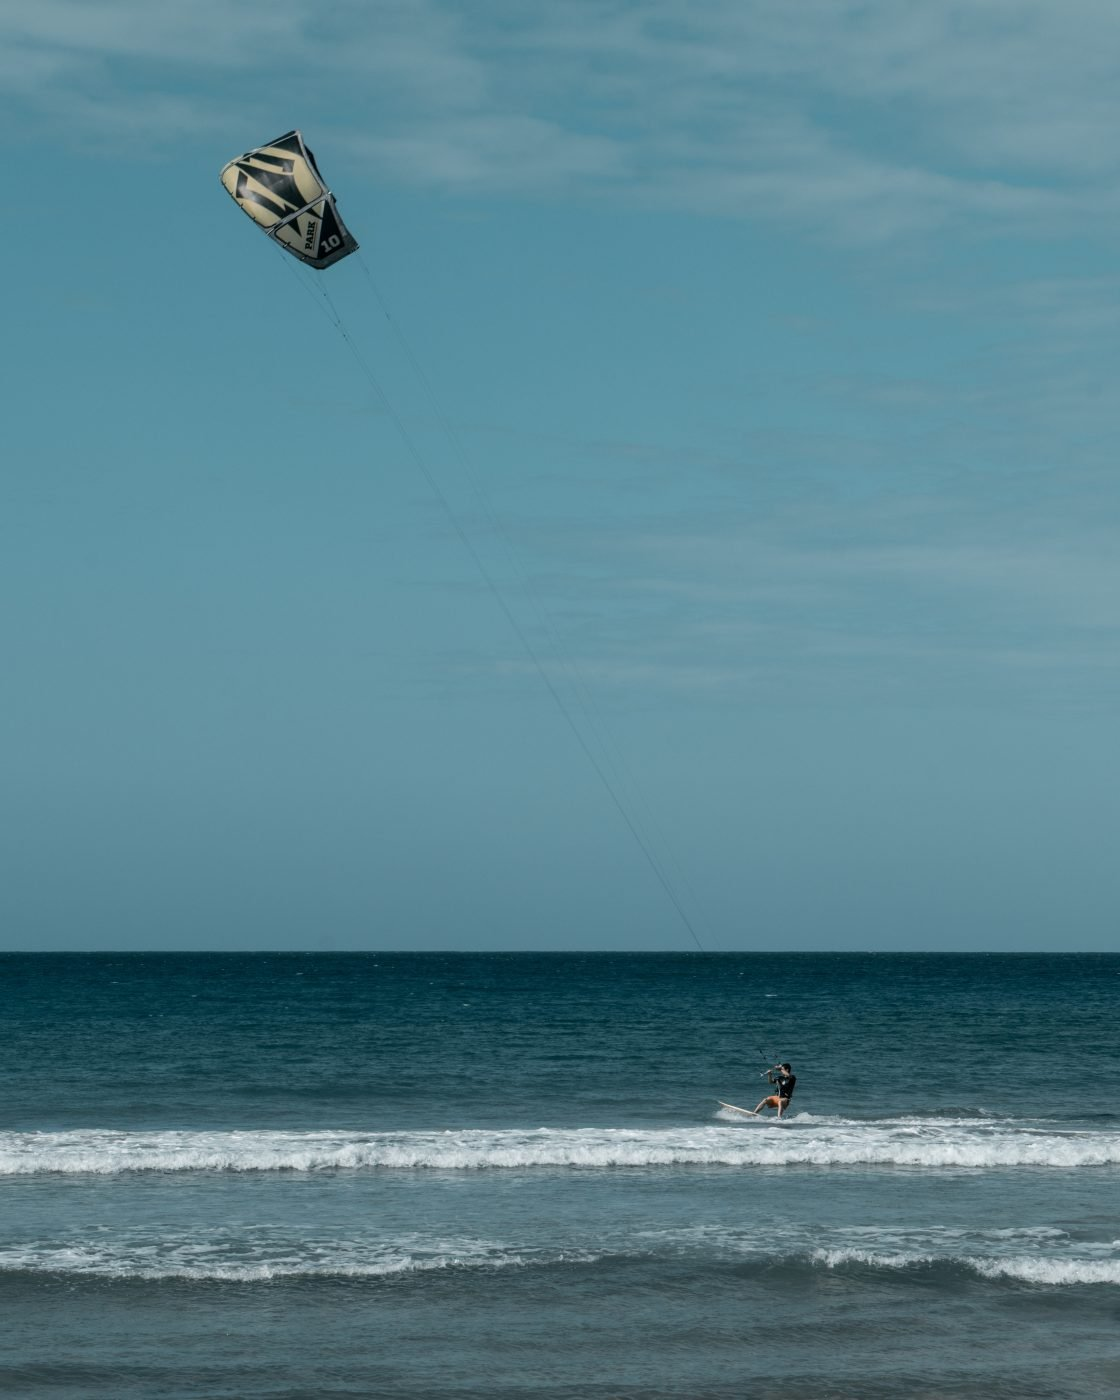 Kite Beach, Cabarete, Dominican Republic, kitesurfer